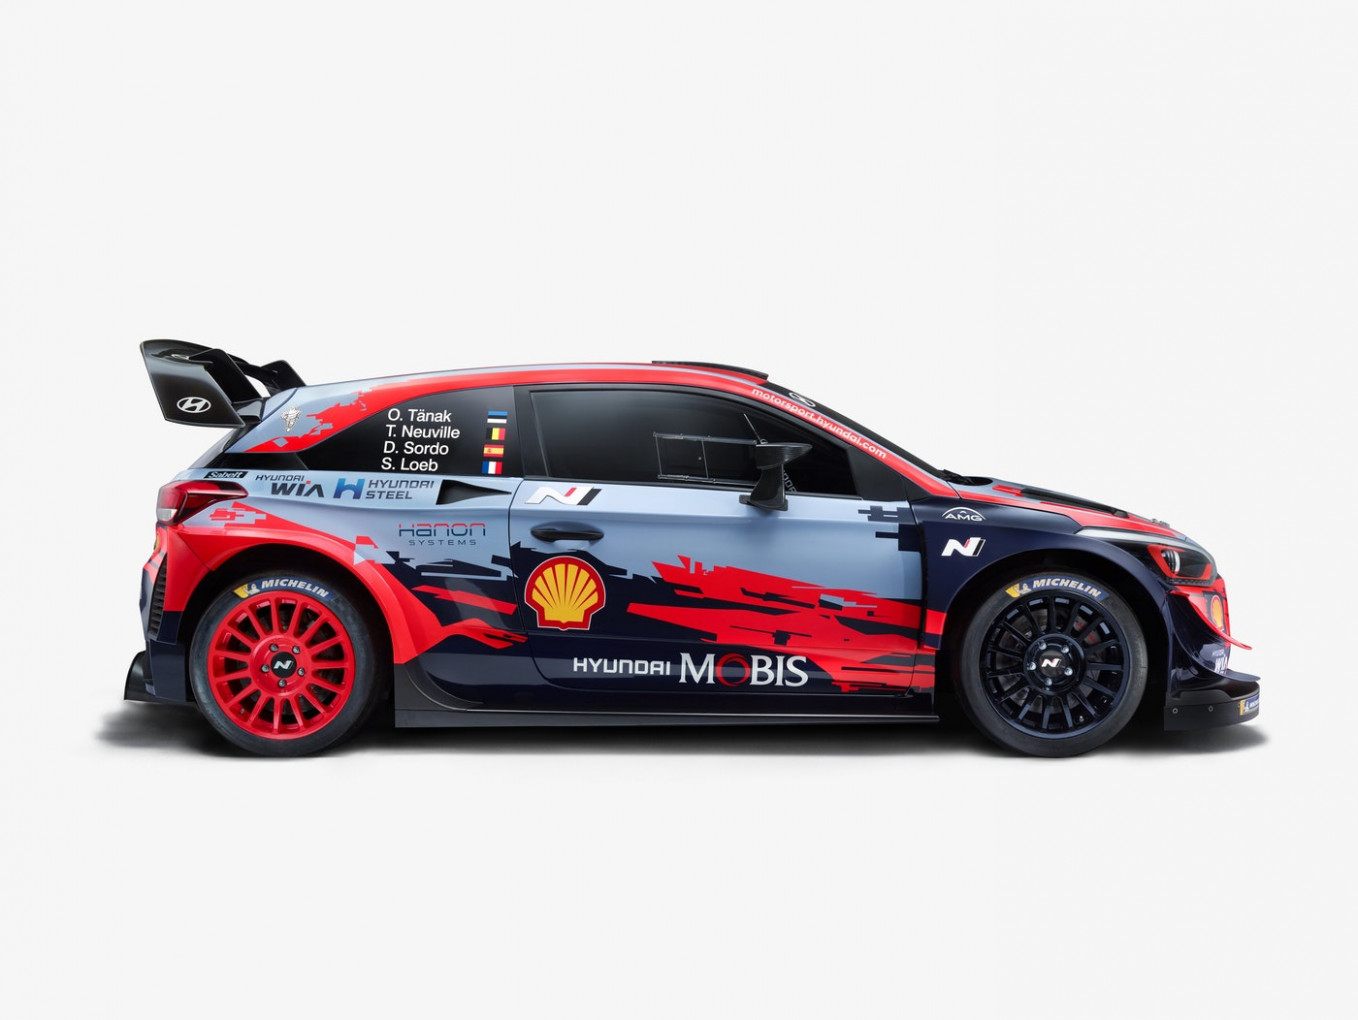 Hyundai completes 8 WRC set with its new car reveal